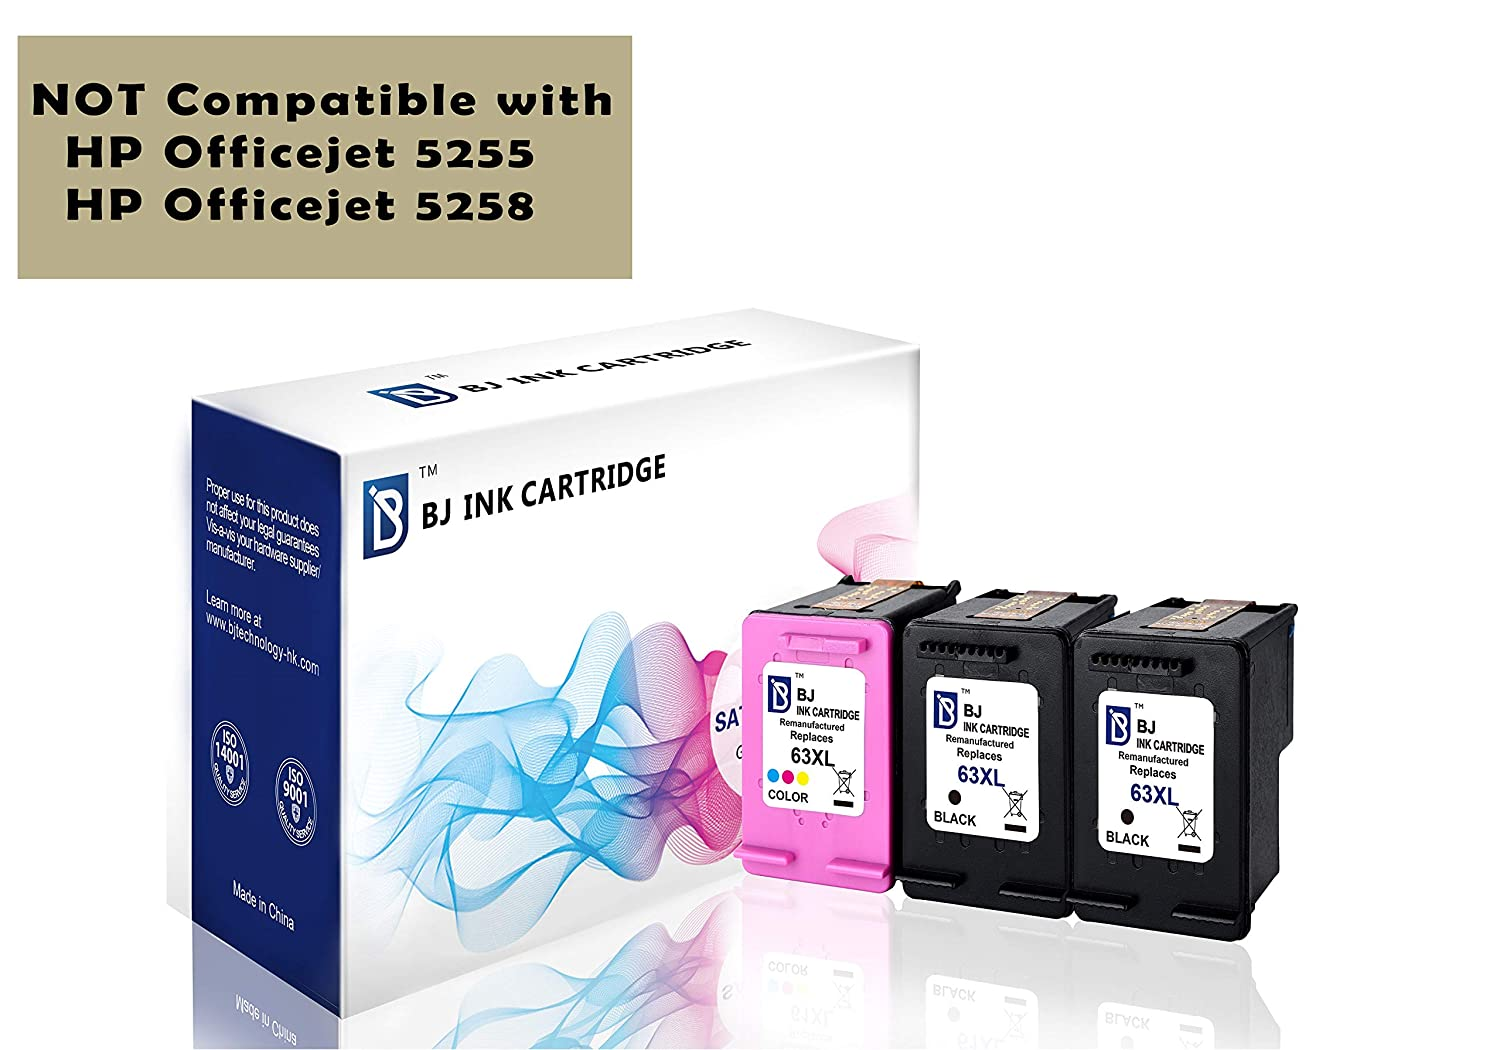 BJ Remanufactured Ink Cartridge replacement for HP 63XL Combo Pack (1 Black 1 Color)High Yield for HP DeskJet 1112 2130 2133 3630 3632 3633 3636 HP ENVY 4512 4516 4520 HP OfficeJet 3830 3832 4650 4652 4655